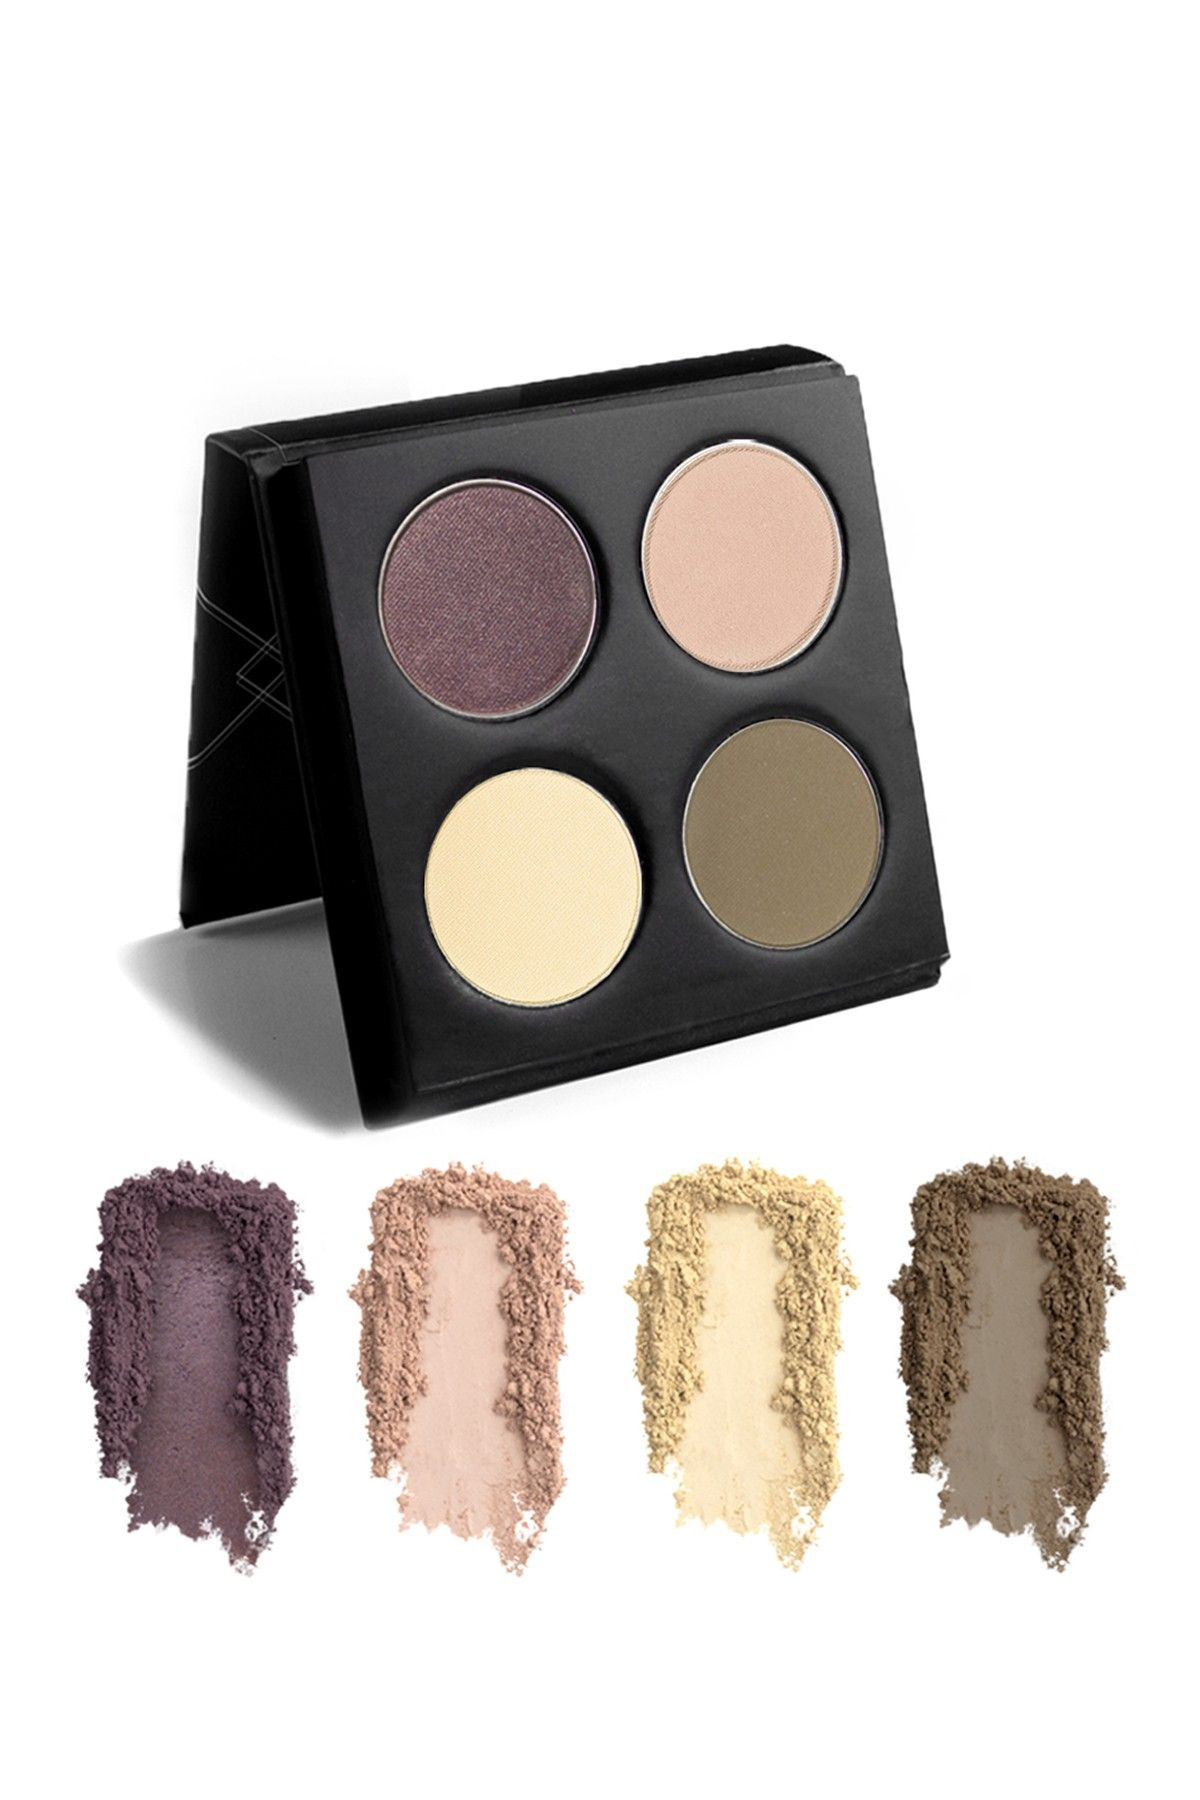 Makeup Geek Vivacious Eyeshadow Quad Sponsored , Aff,